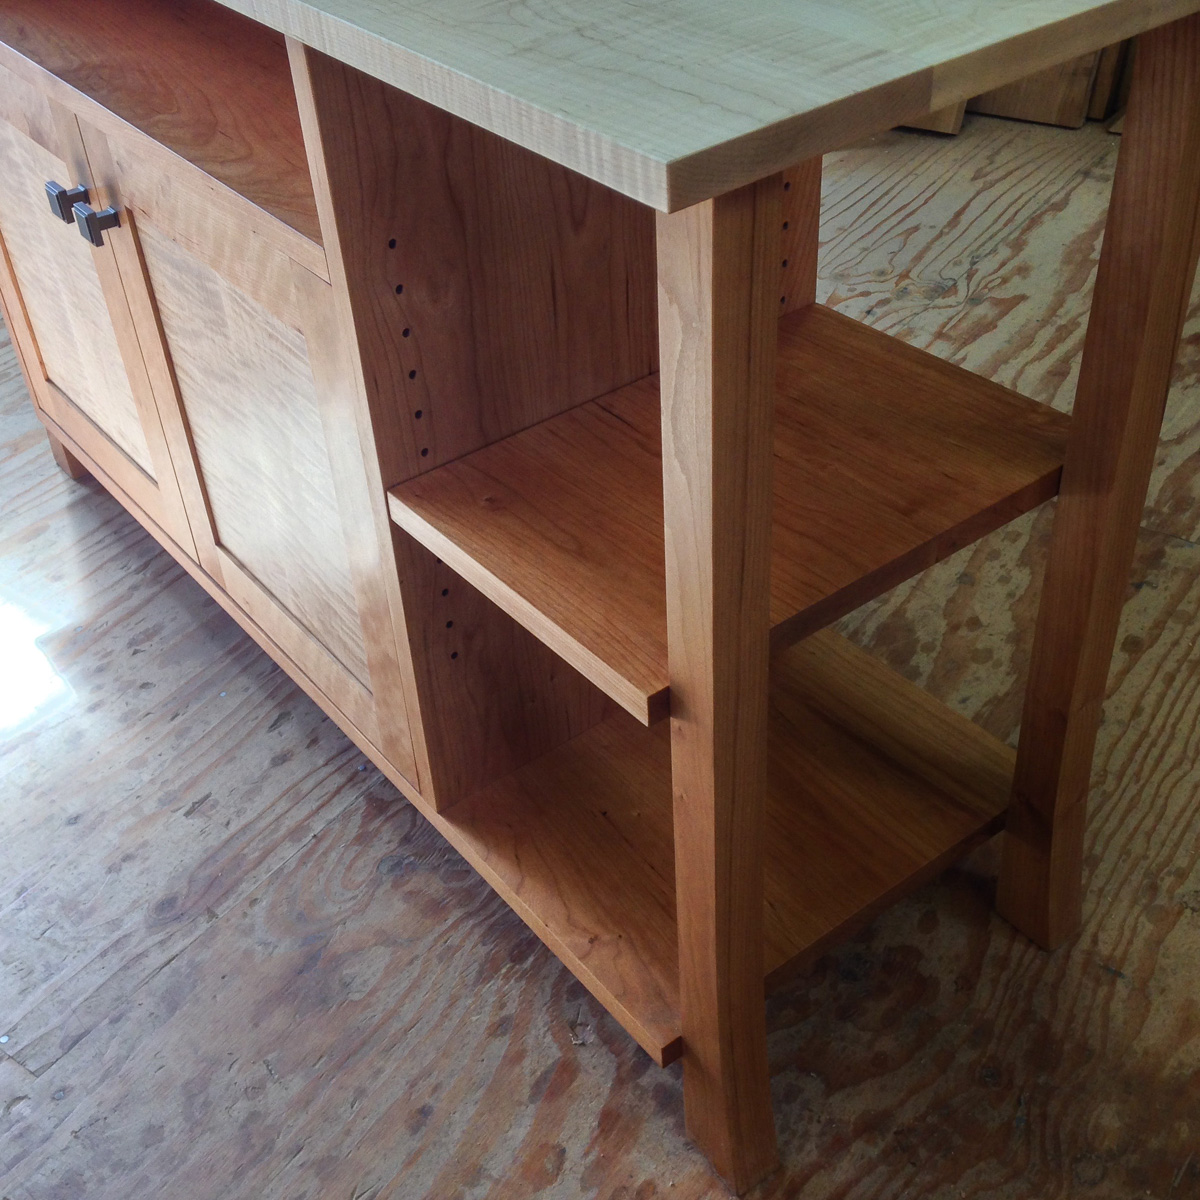 An adjustable shelf and open end on a cherry case with curly maple top and door panels.